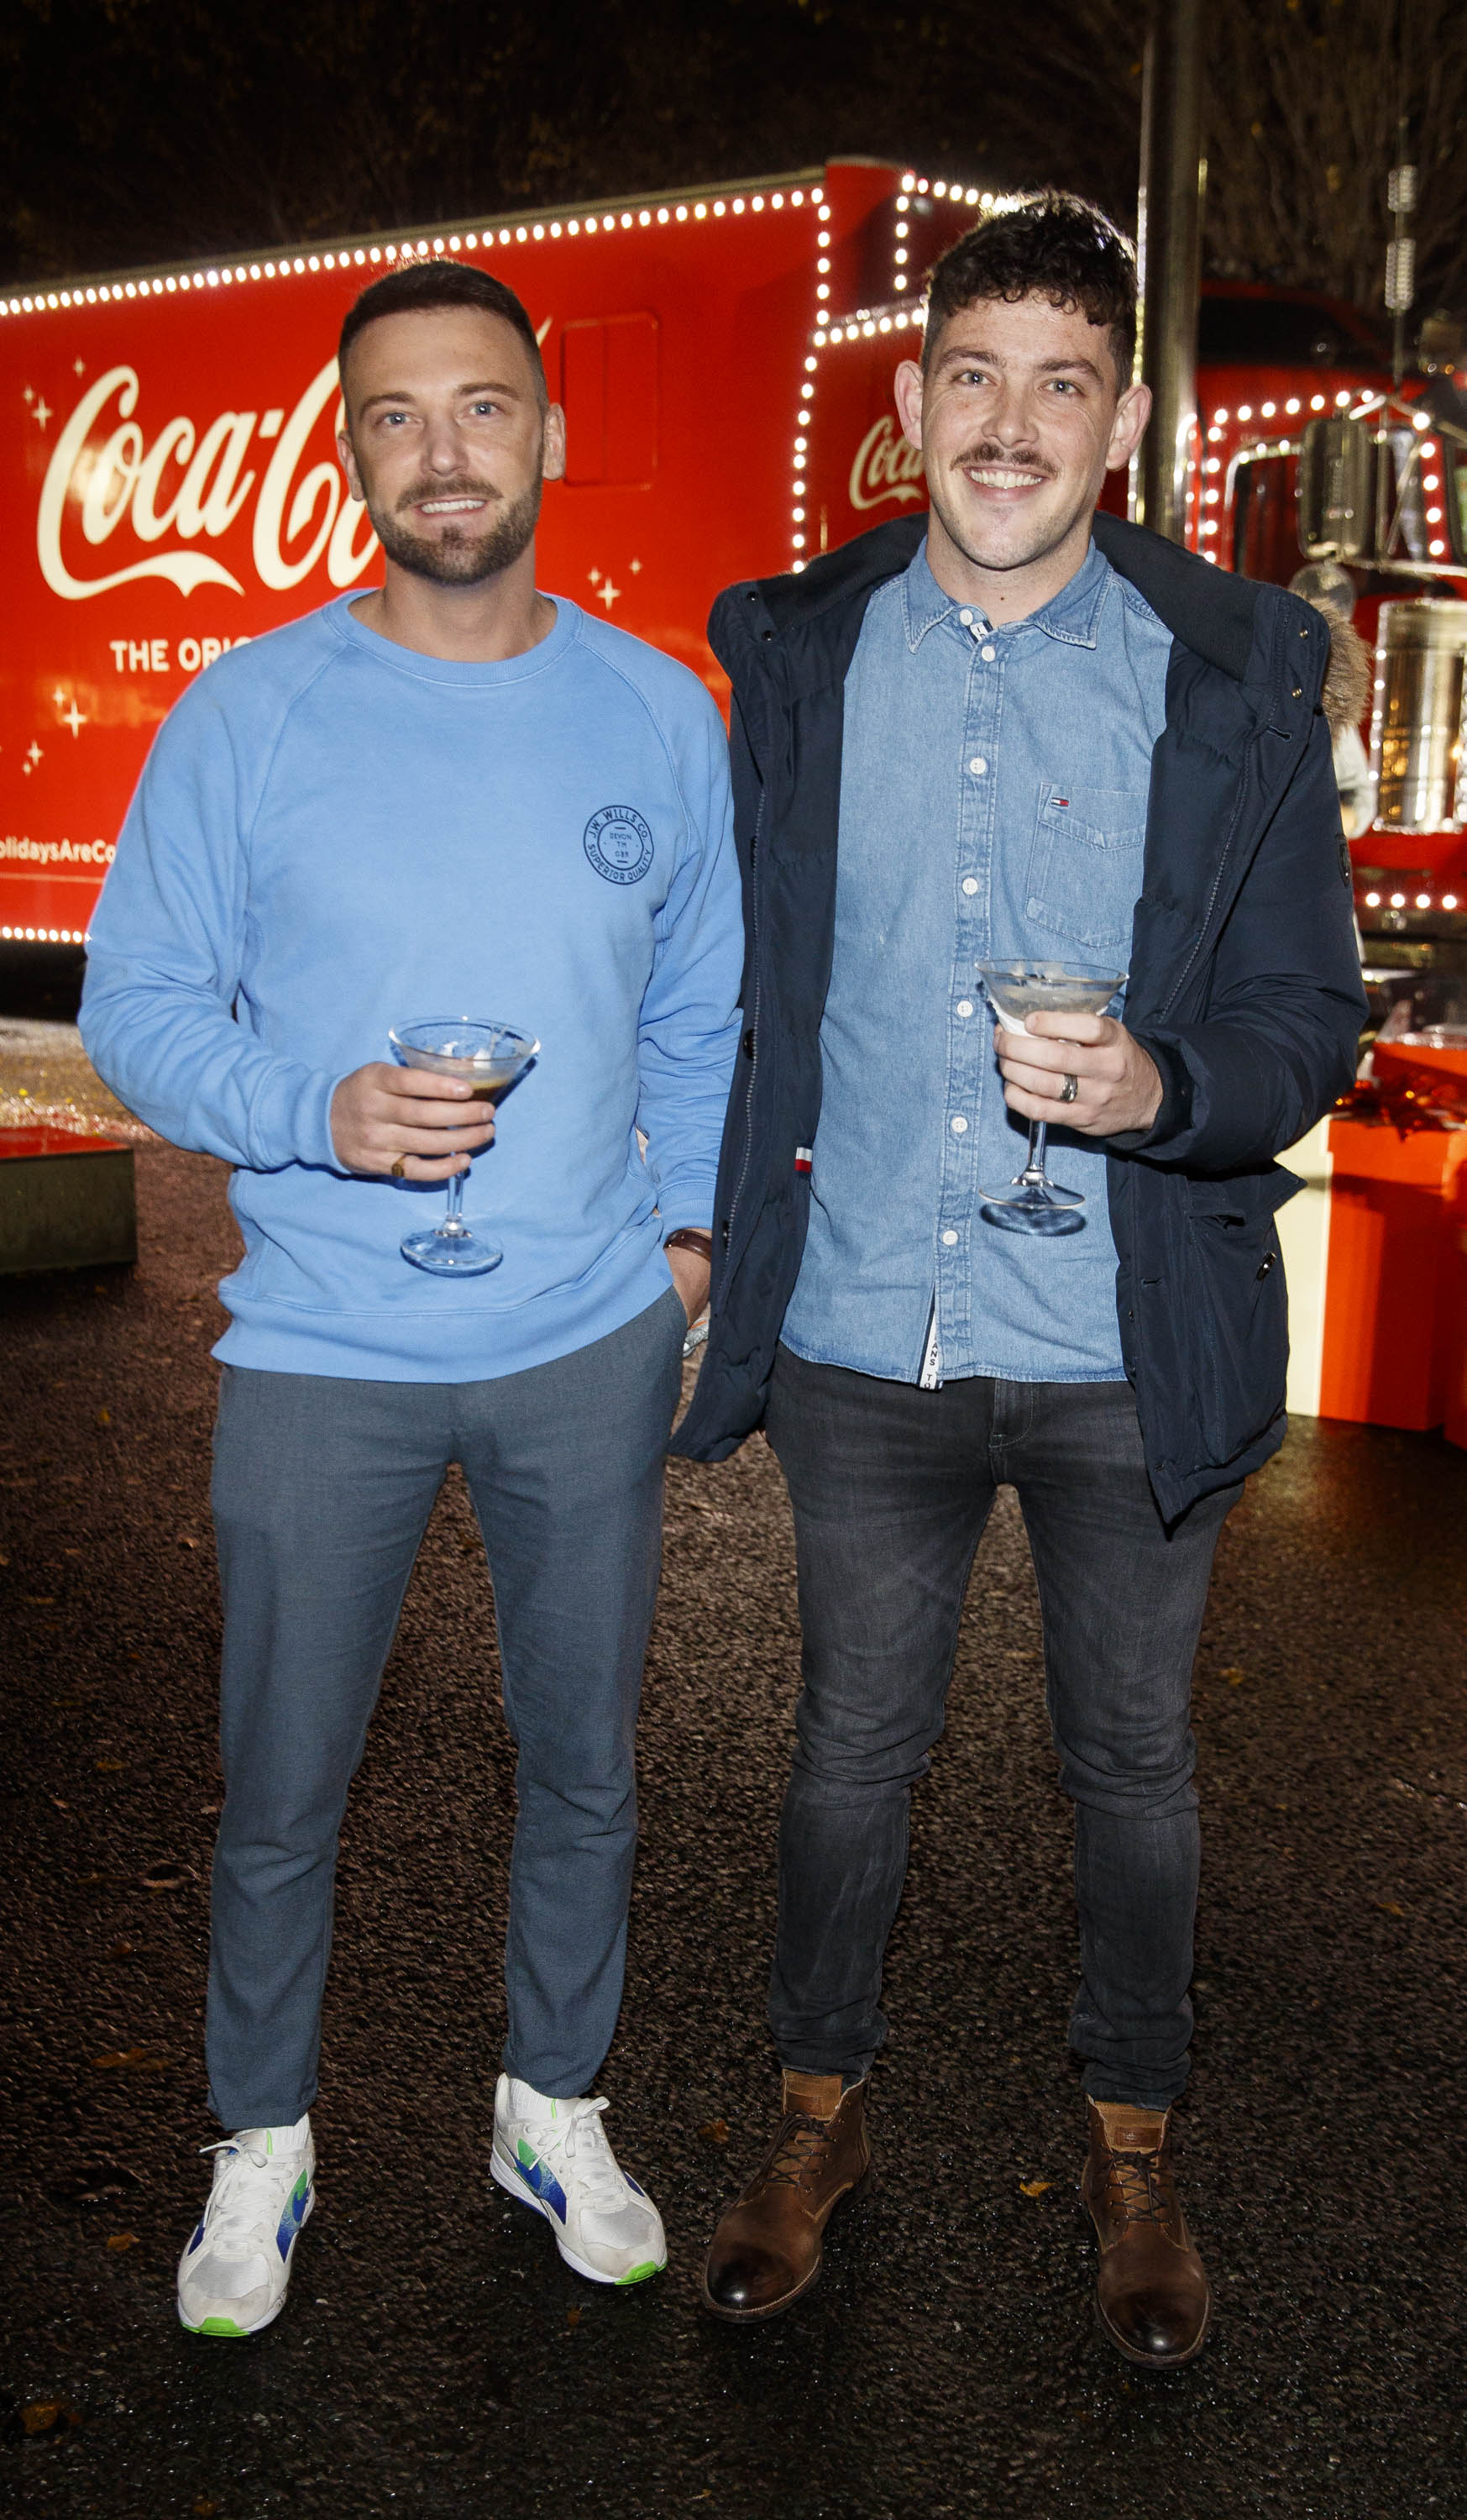 Steve McCann and Paul McDonnell pictured at Coca-Cola's Christmas Truck Tour launch which took place Monday 25th November at the RDS, Dublin. Photo: Andres Poveda